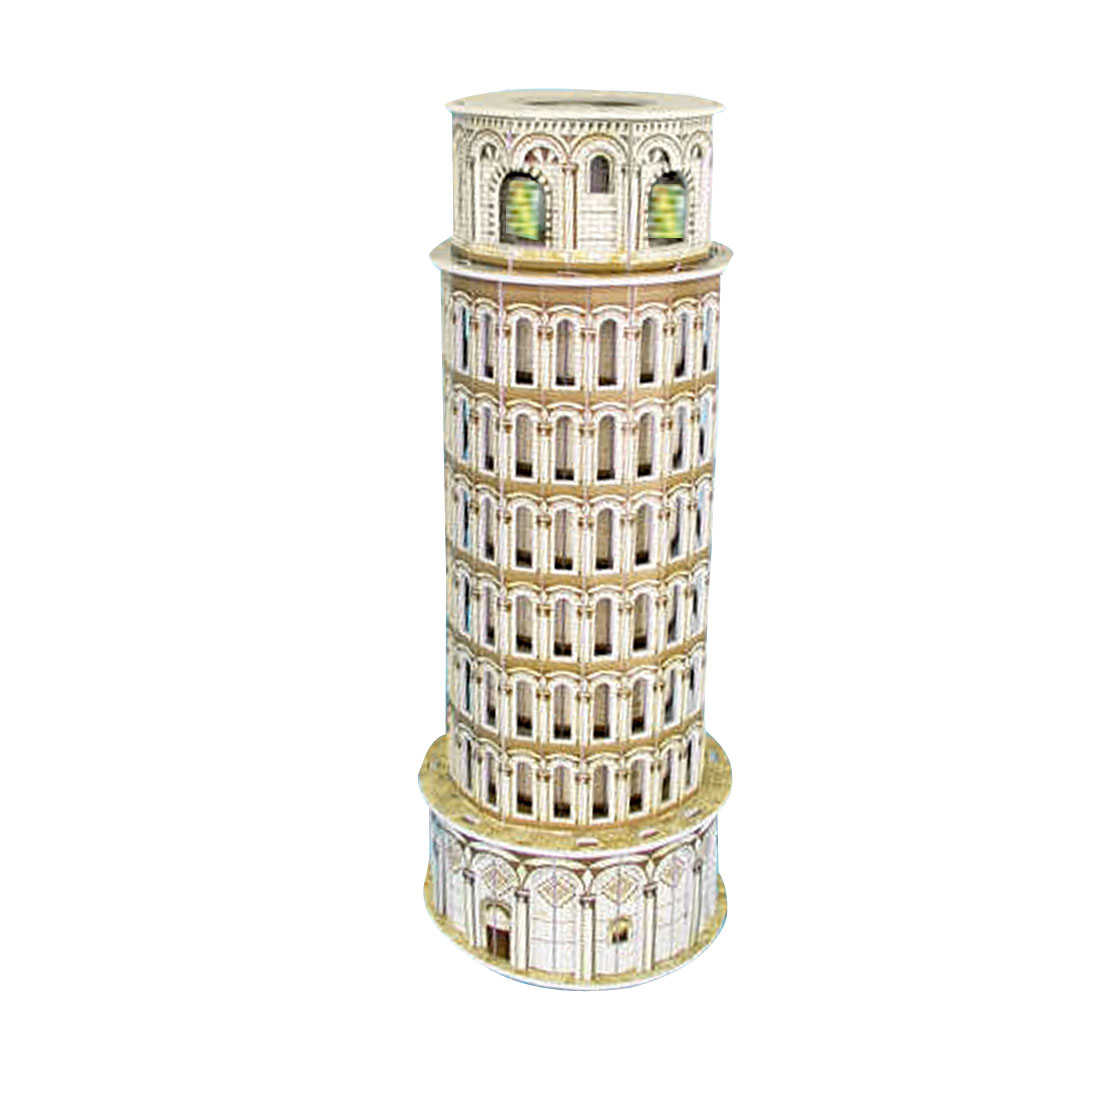 Leaning Tower Model 3D Puzzle Assembled Toy for Children Kids